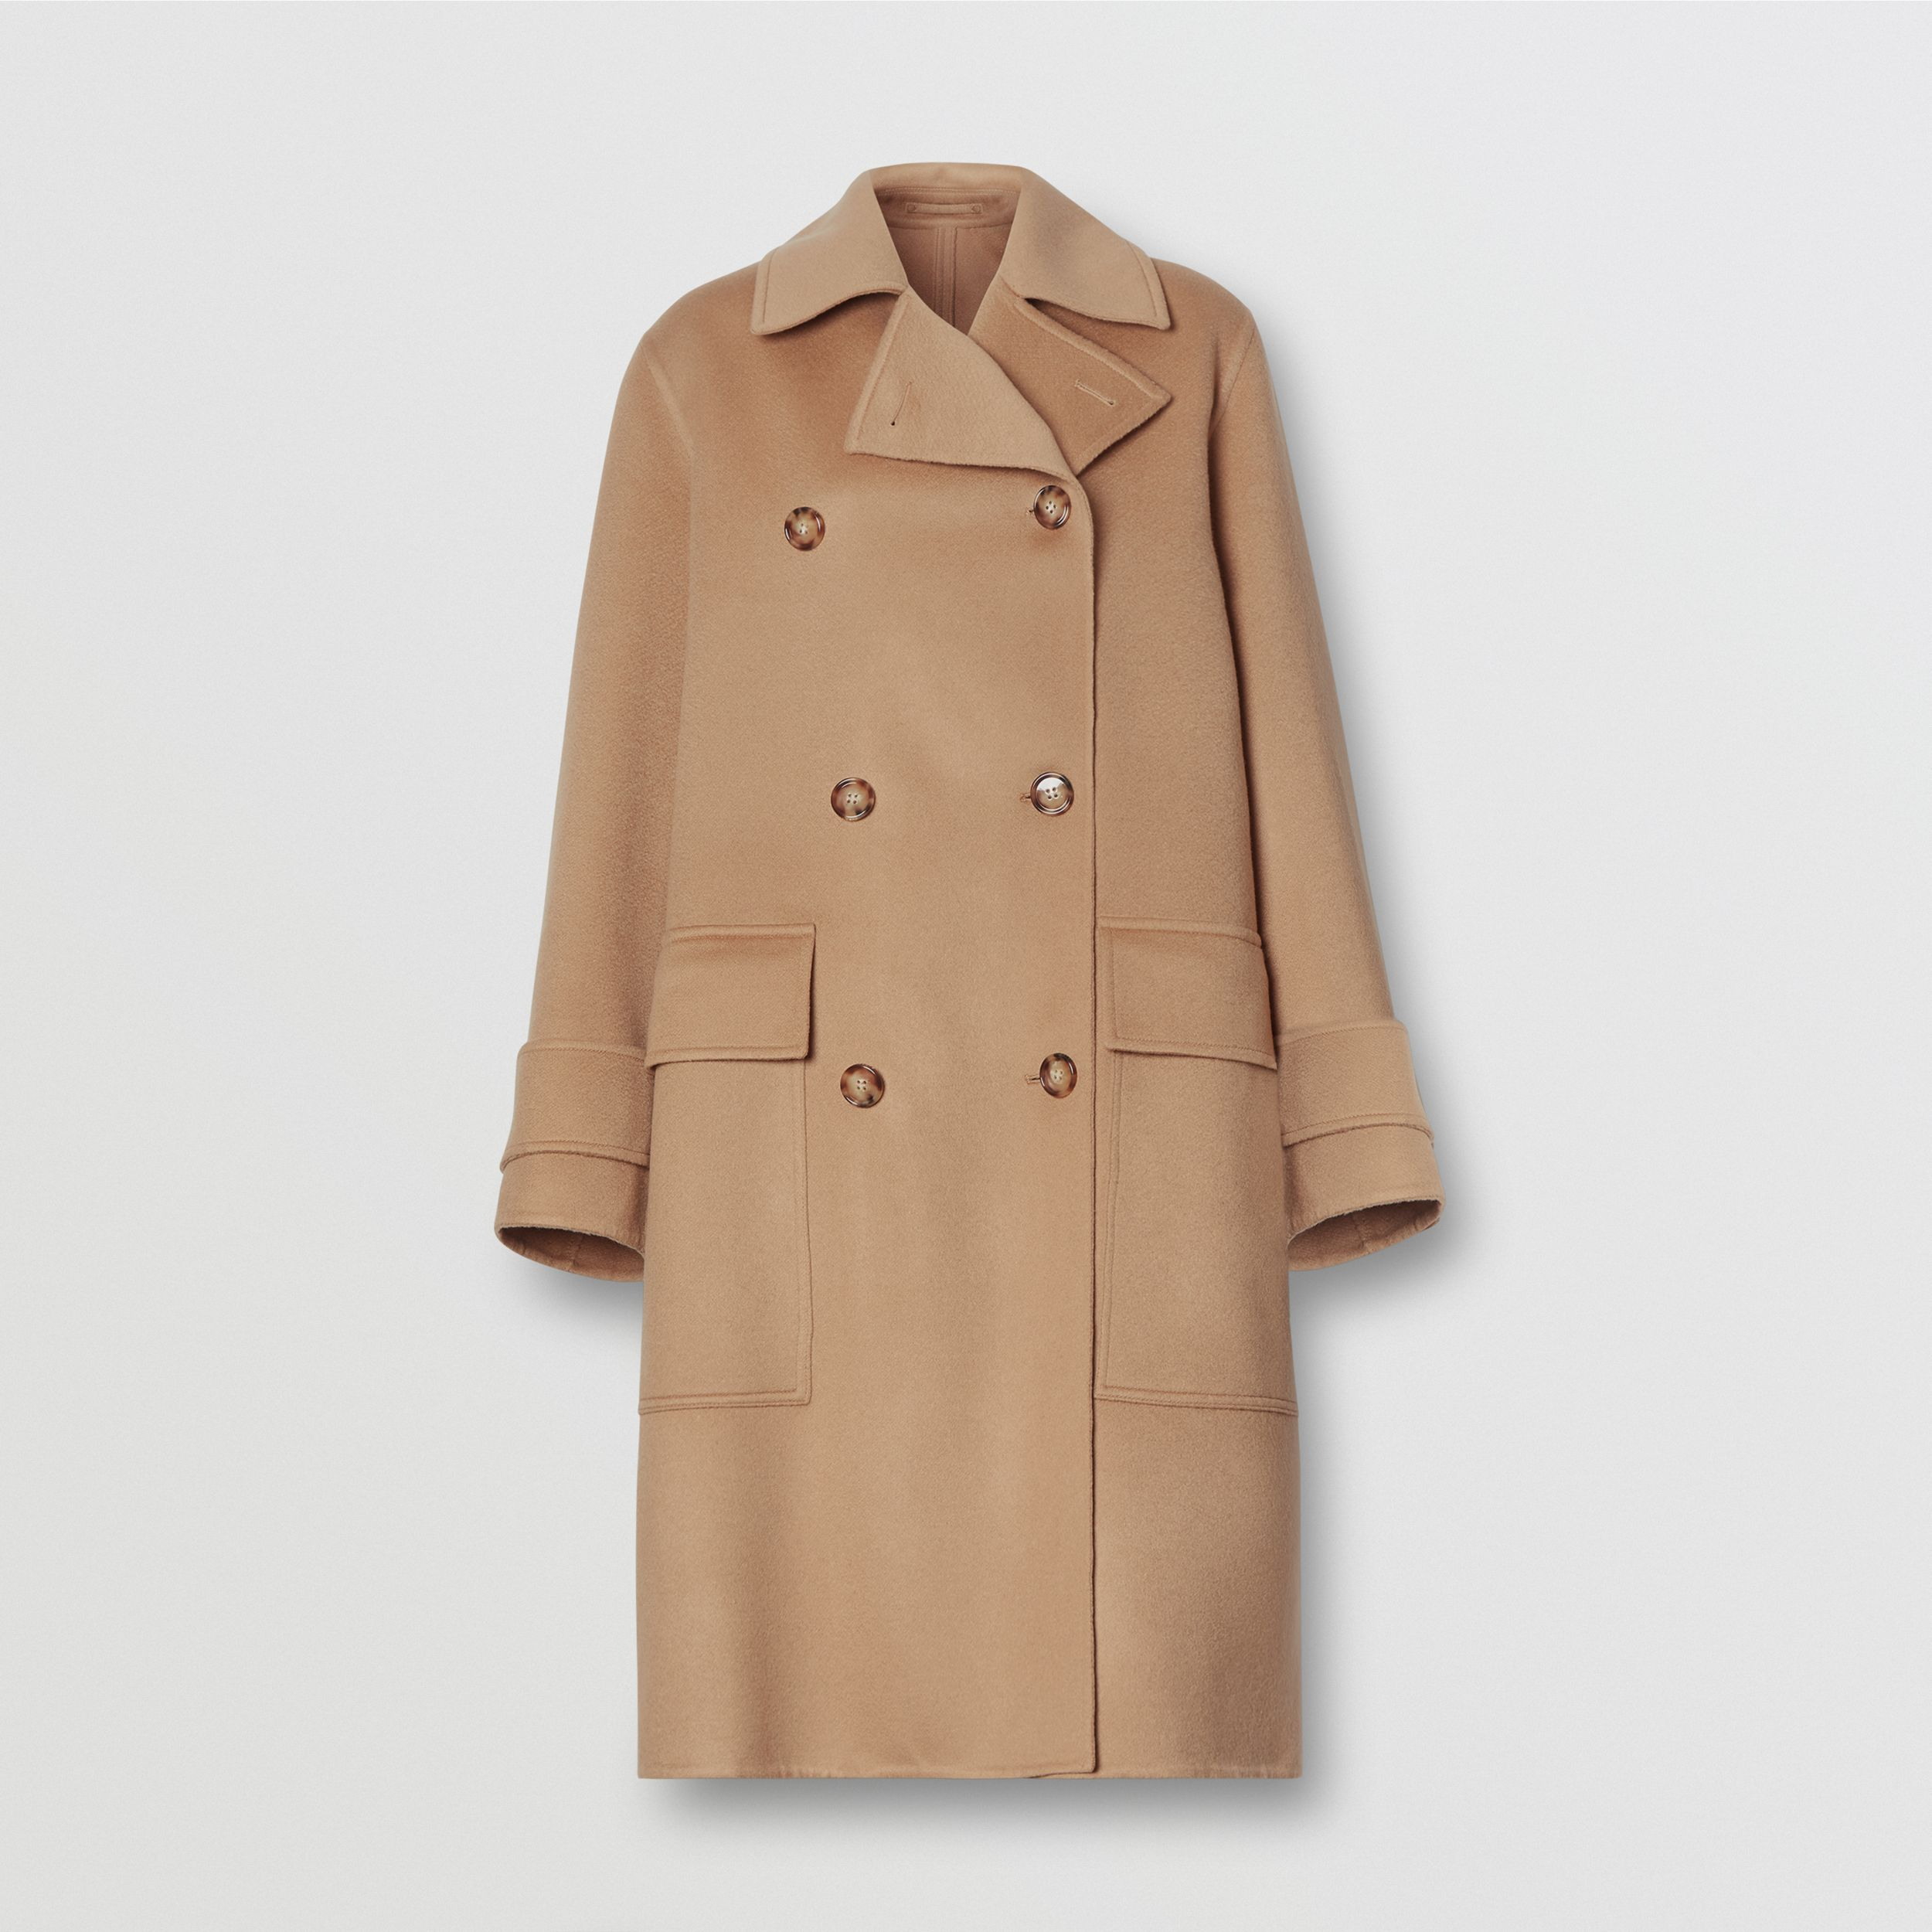 Double-faced Cashmere Oversized Coat in Light Camel - Women | Burberry United States - 4